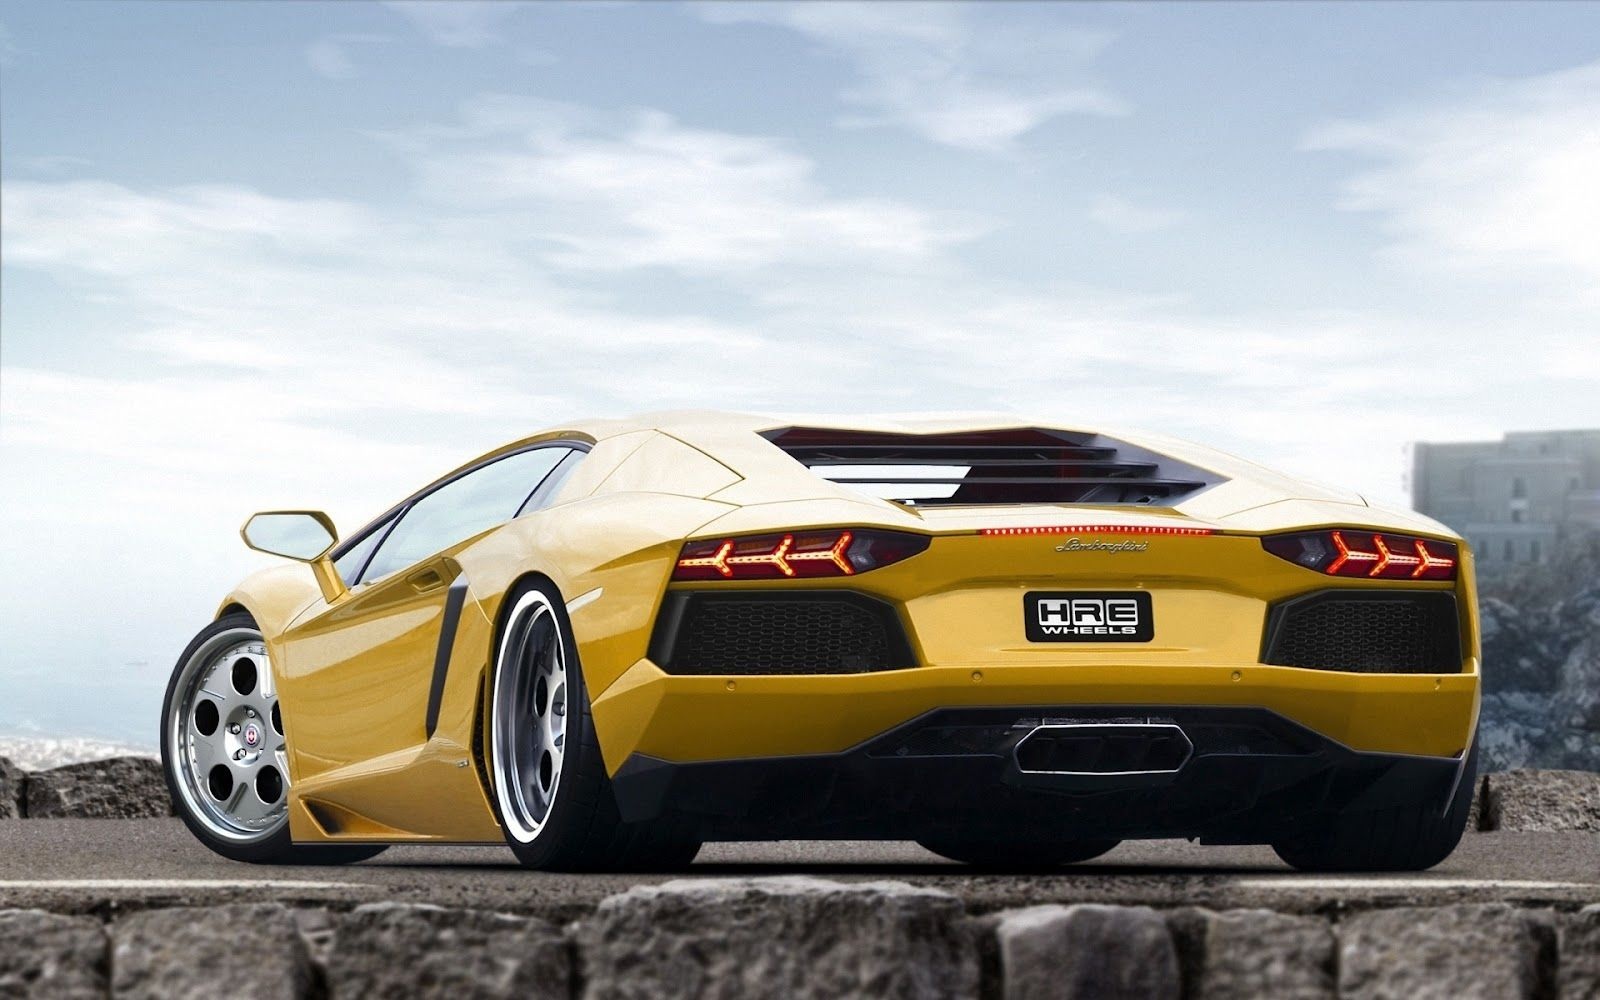 Download Hd Car Wallpapers For Windows 7 Ultimate High Quality